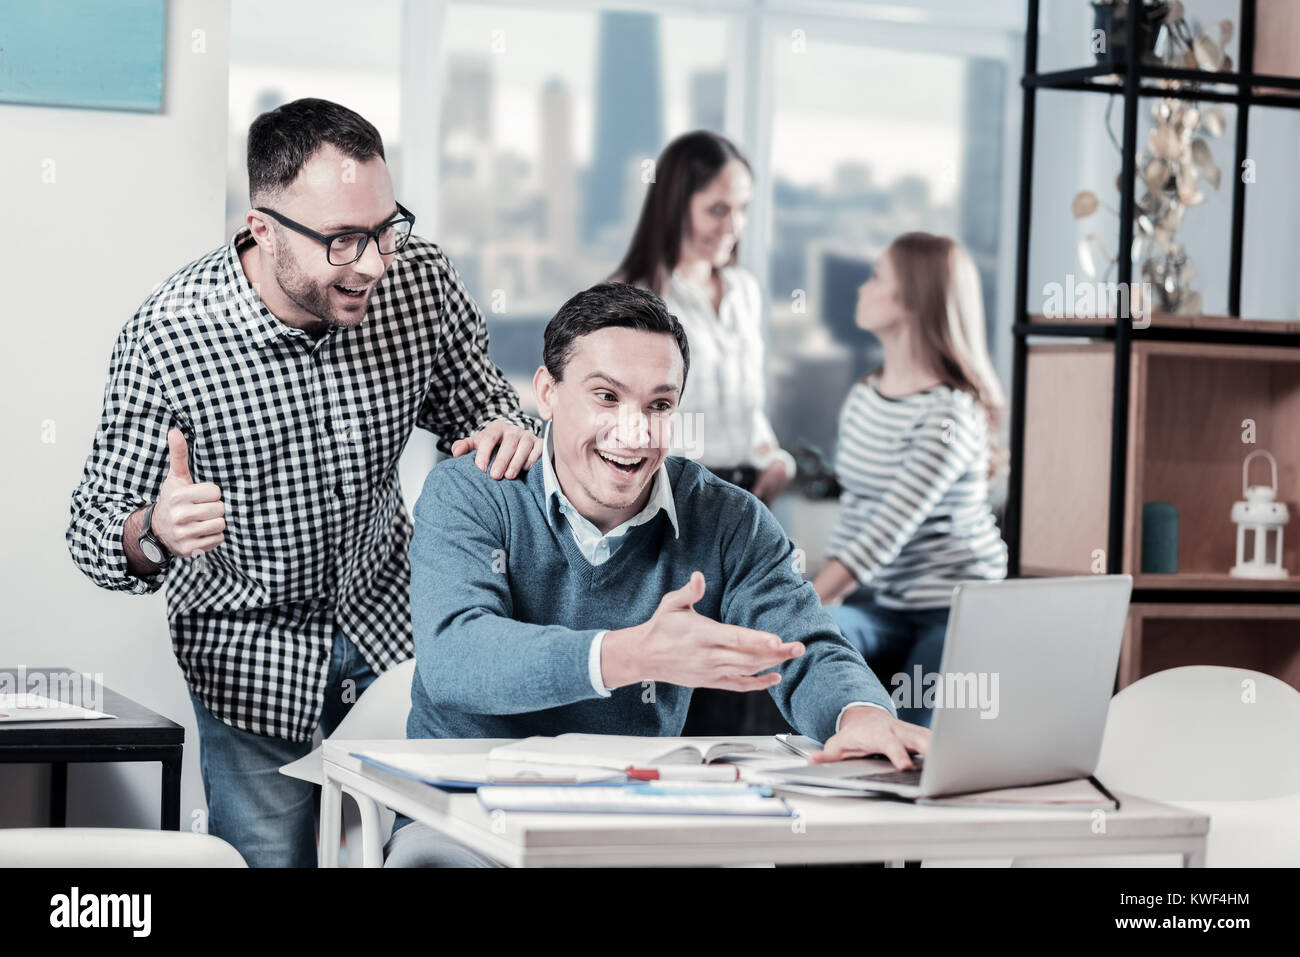 Do you believe. Funny satisfied amazed workers spending time together looking at the laptop and rejoicing. - Stock Image